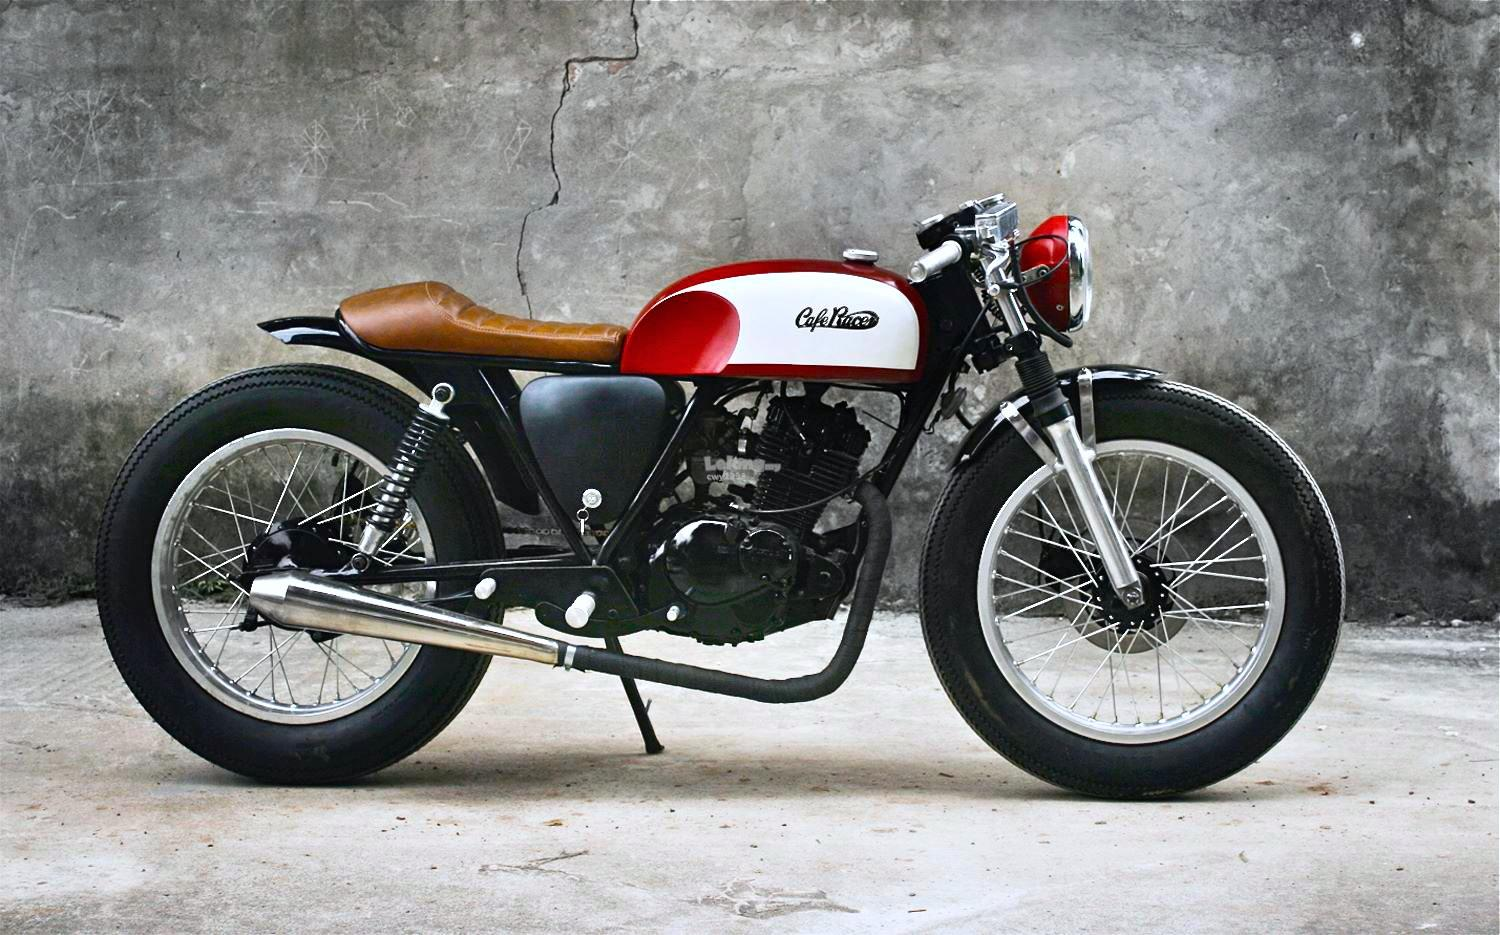 Cafe Racer Motorcycles For Sale Malaysia